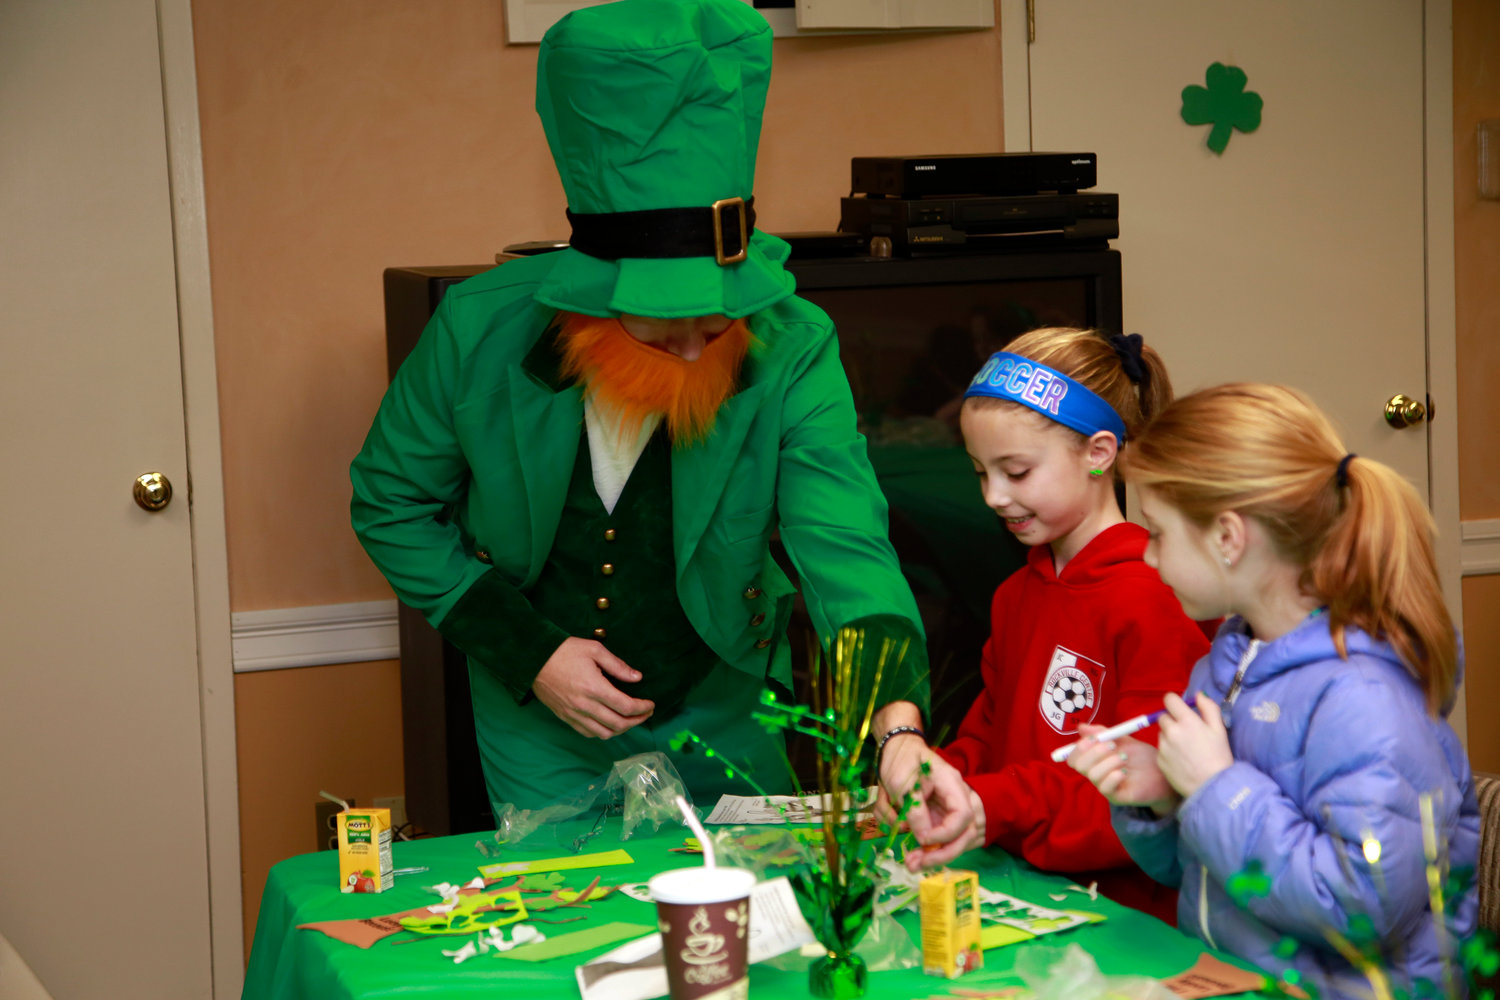 Shamus the Leprechaun gave coins to the Rick sisters, Bernadette, 9, center, and Caroline, 7.